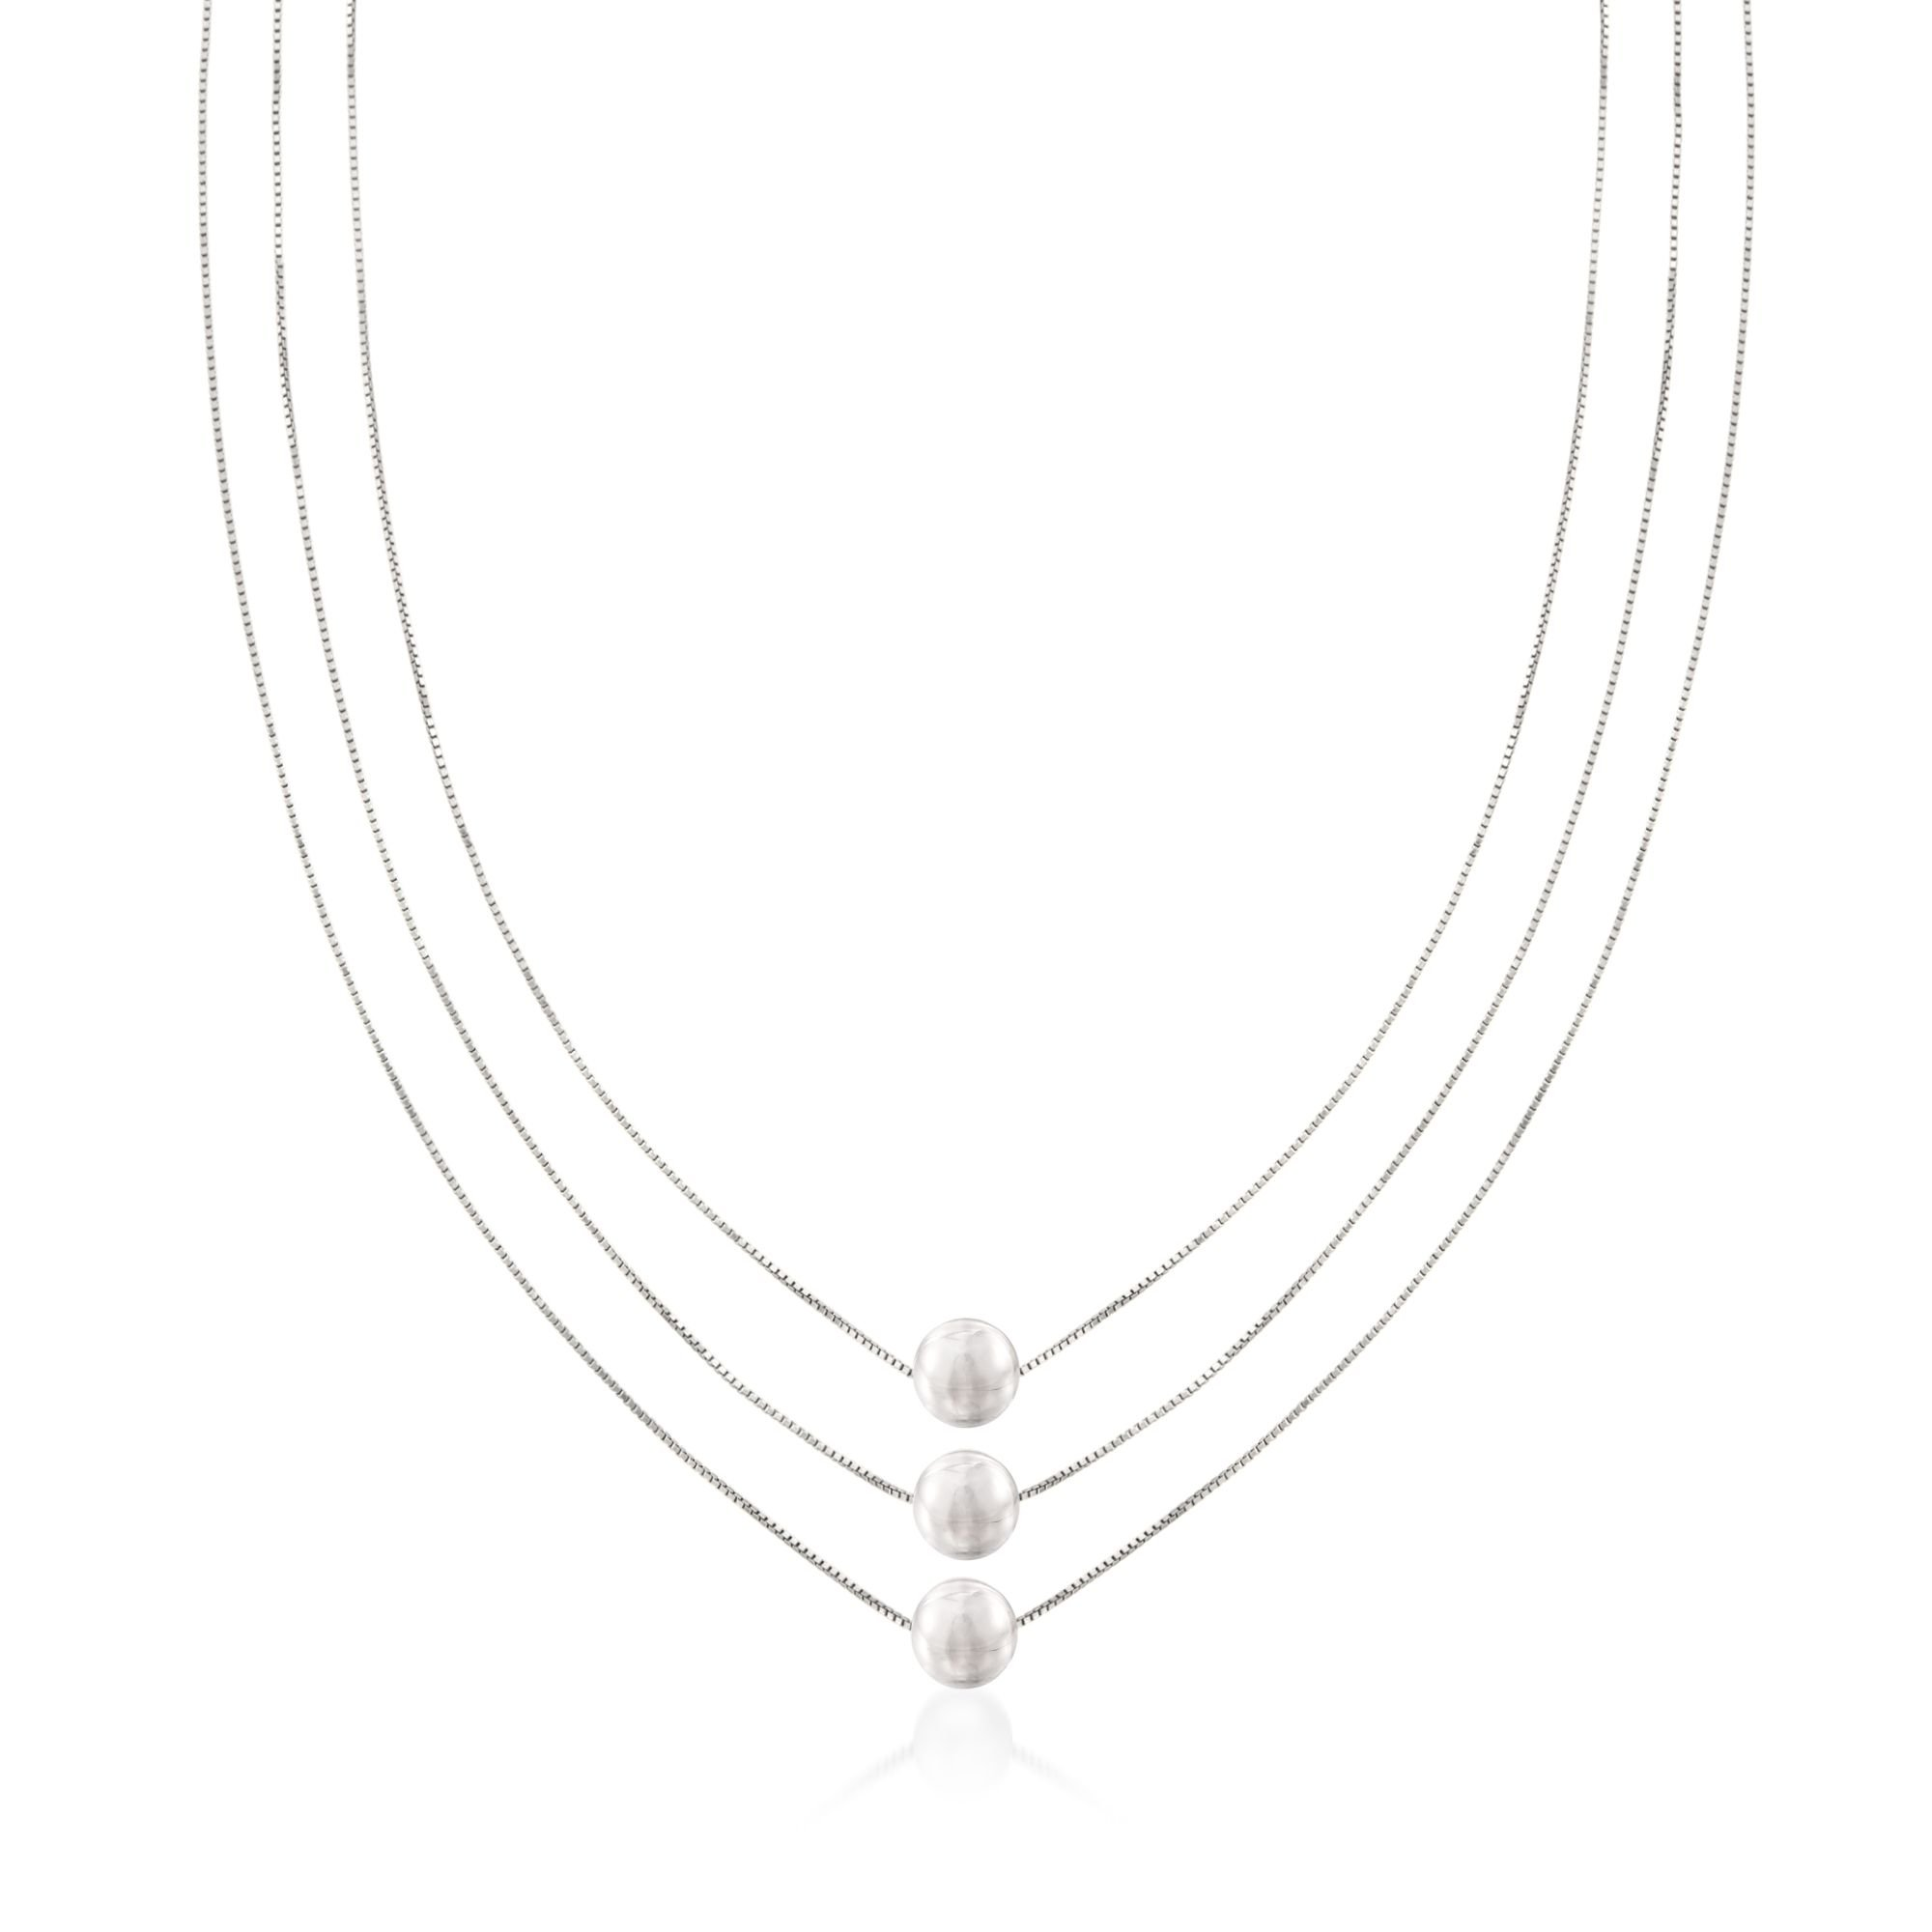 Ross-Simons Sterling Silver Three-Strand Layered Bead Necklace. 18''